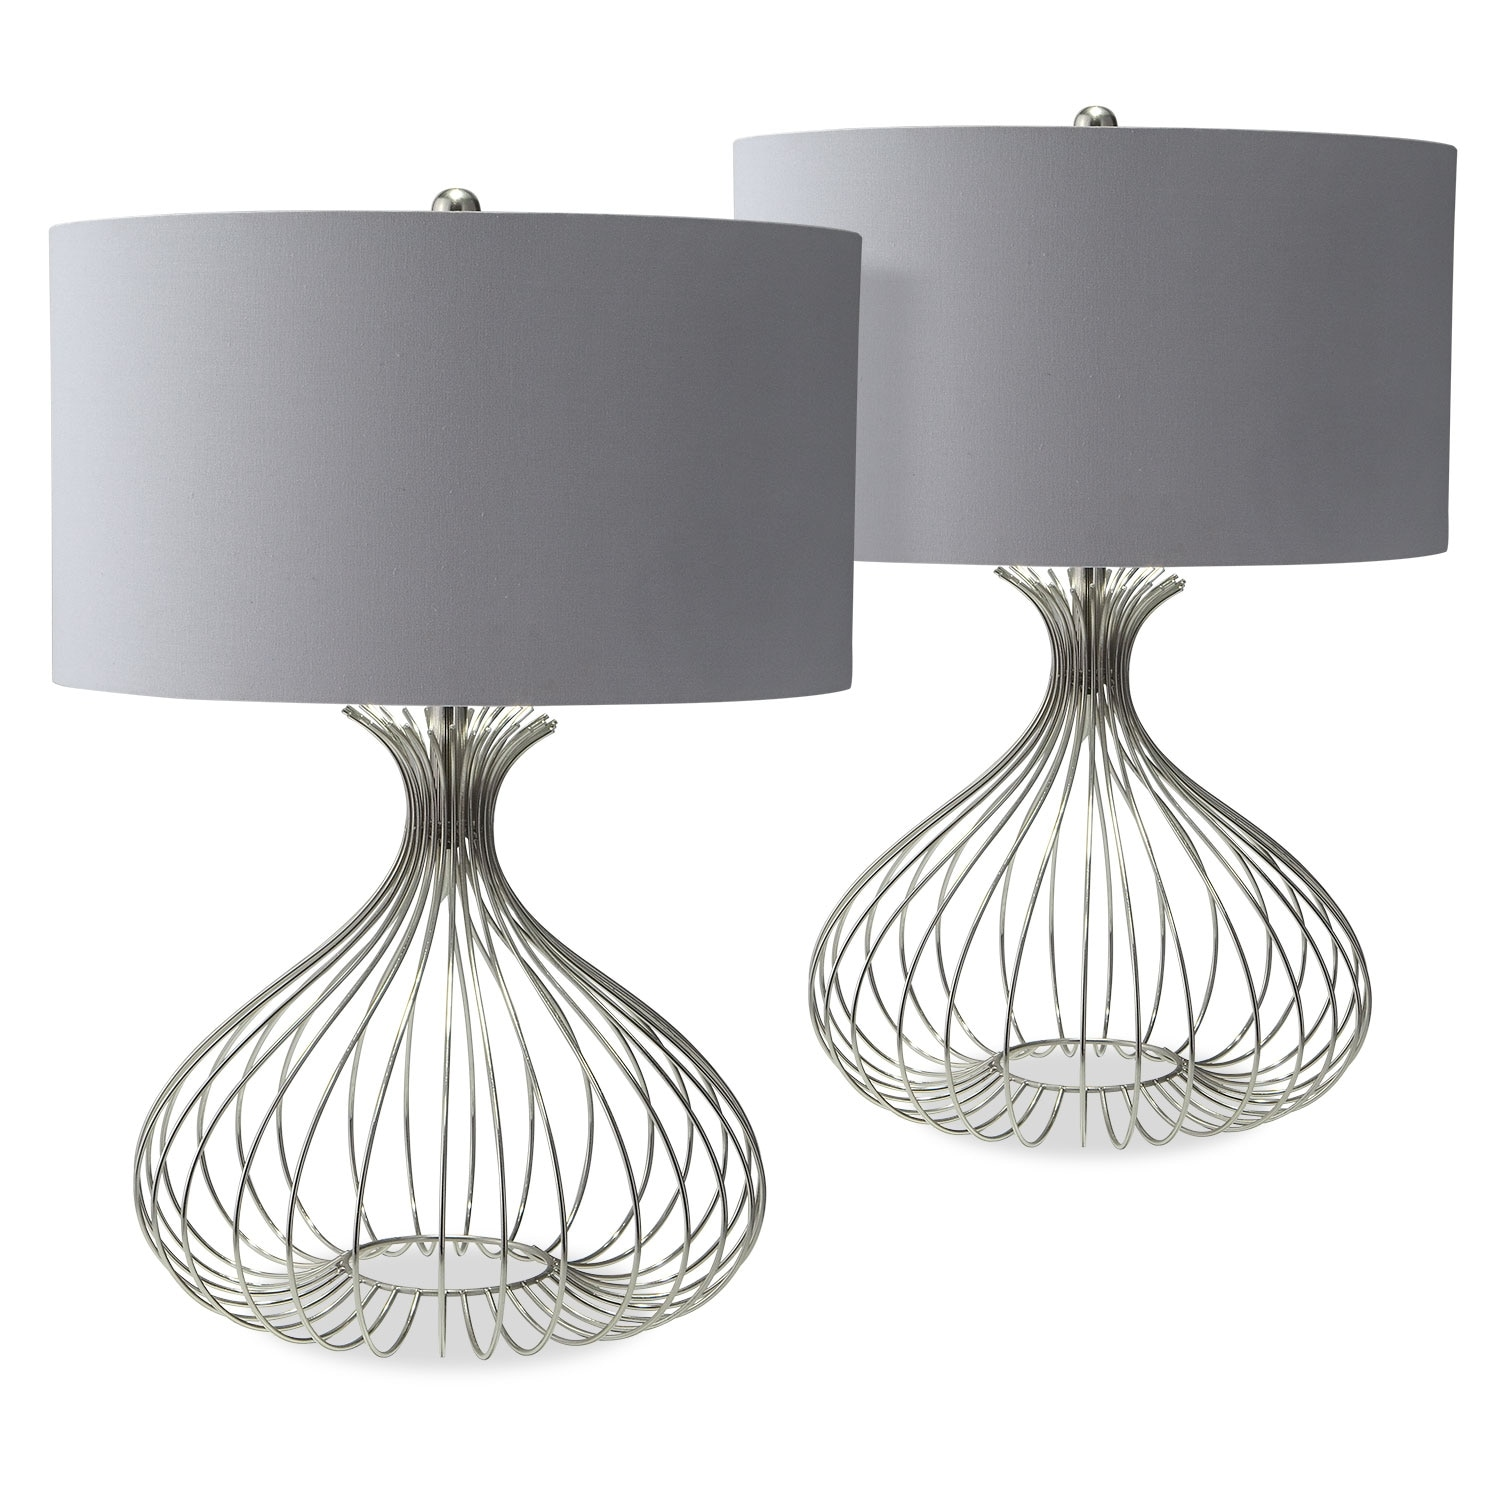 Wire a lamp wire center nickel wire 2 pack table lamp set value city furniture and mattresses rh valuecityfurniture com wire a lamp with 3 lights wire a lamp with 2 bulbs keyboard keysfo Gallery